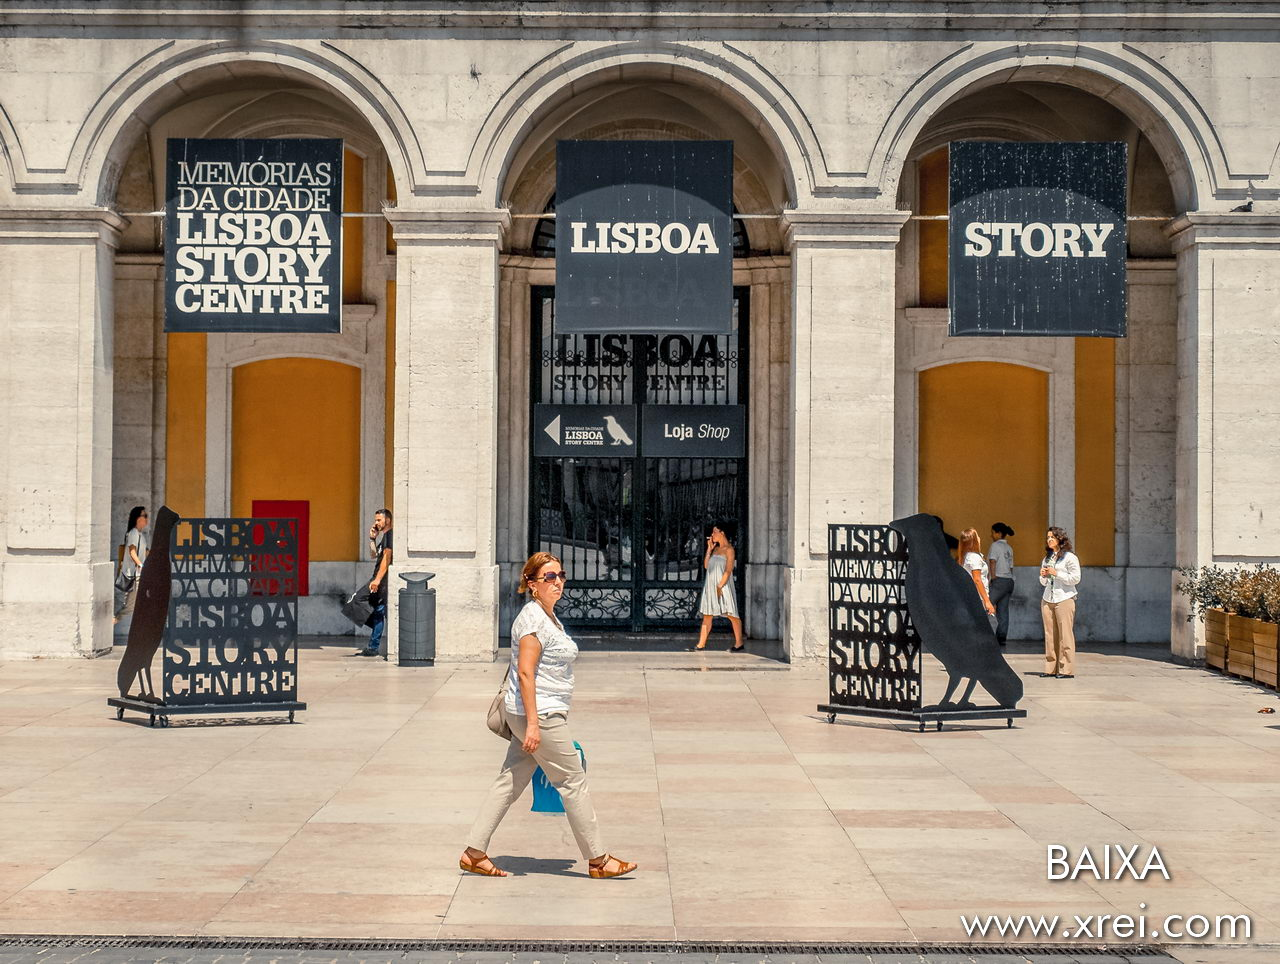 Lisboa Story Center is a center for the dissemination of the history of Lisbon through presentations with virtual reality where we can get to know in detail the history of the city of Lisbon in just 60 minutes